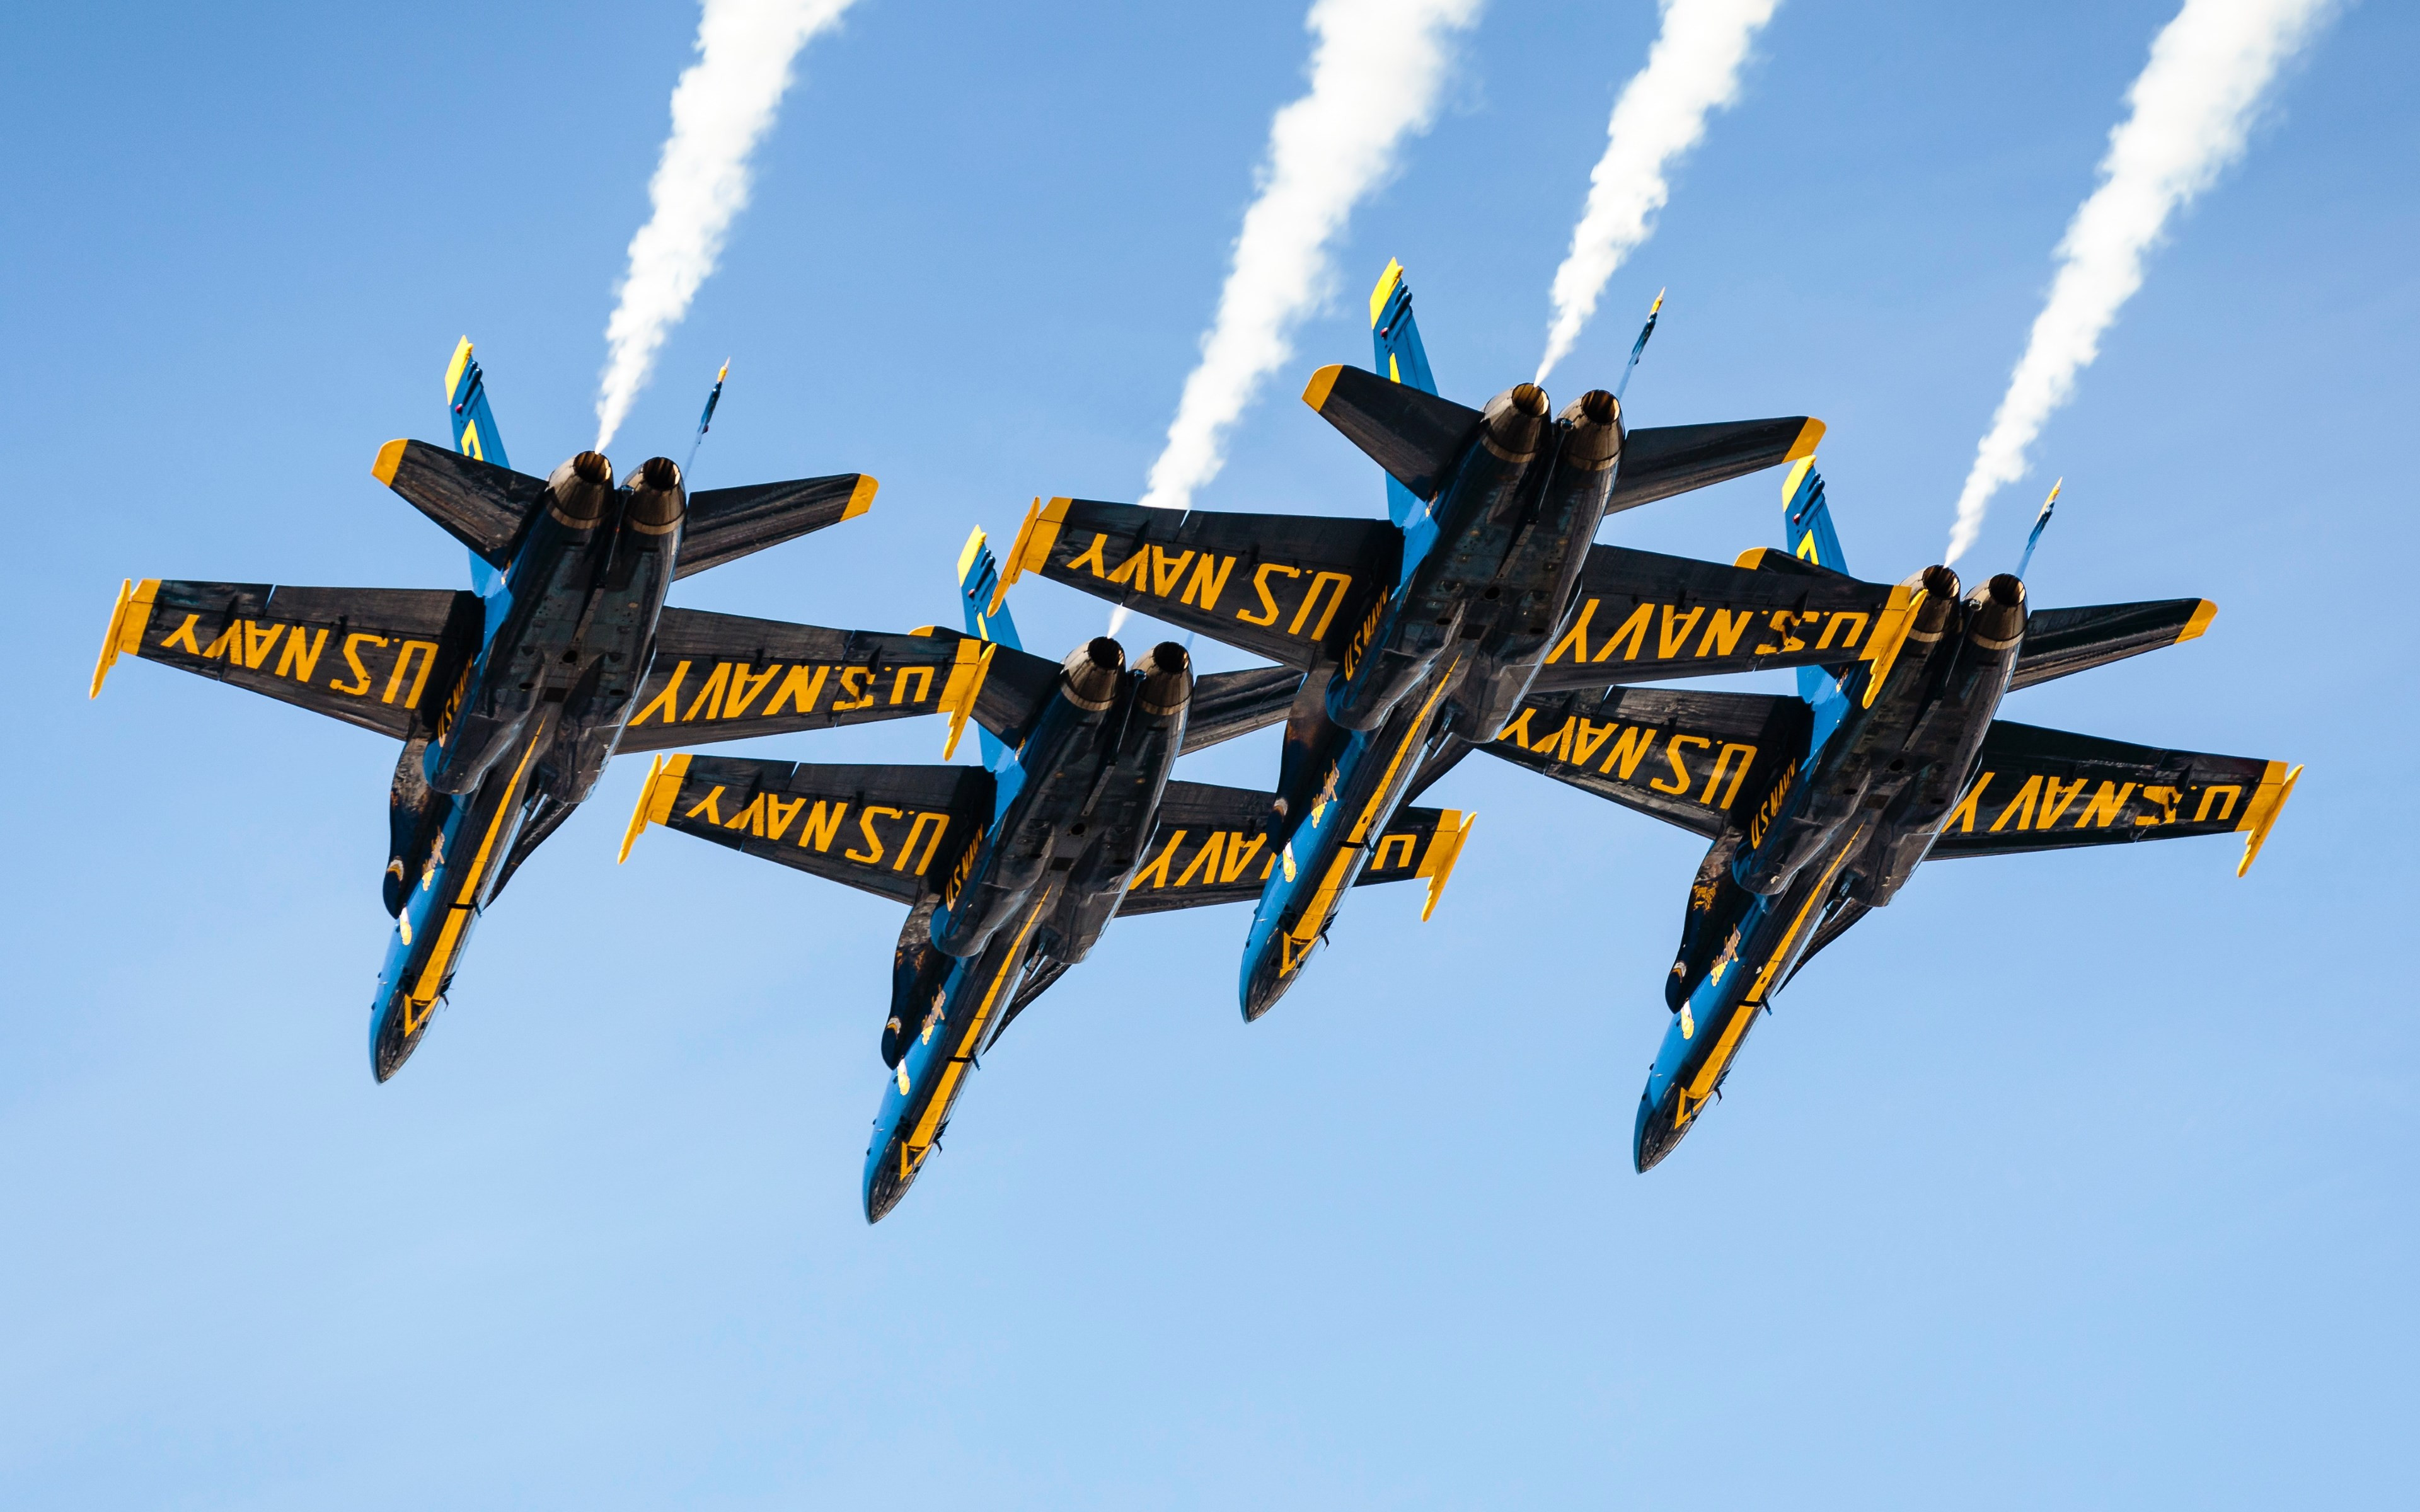 Blue Angels at San Francisco airshow wallpaper 3840x2400